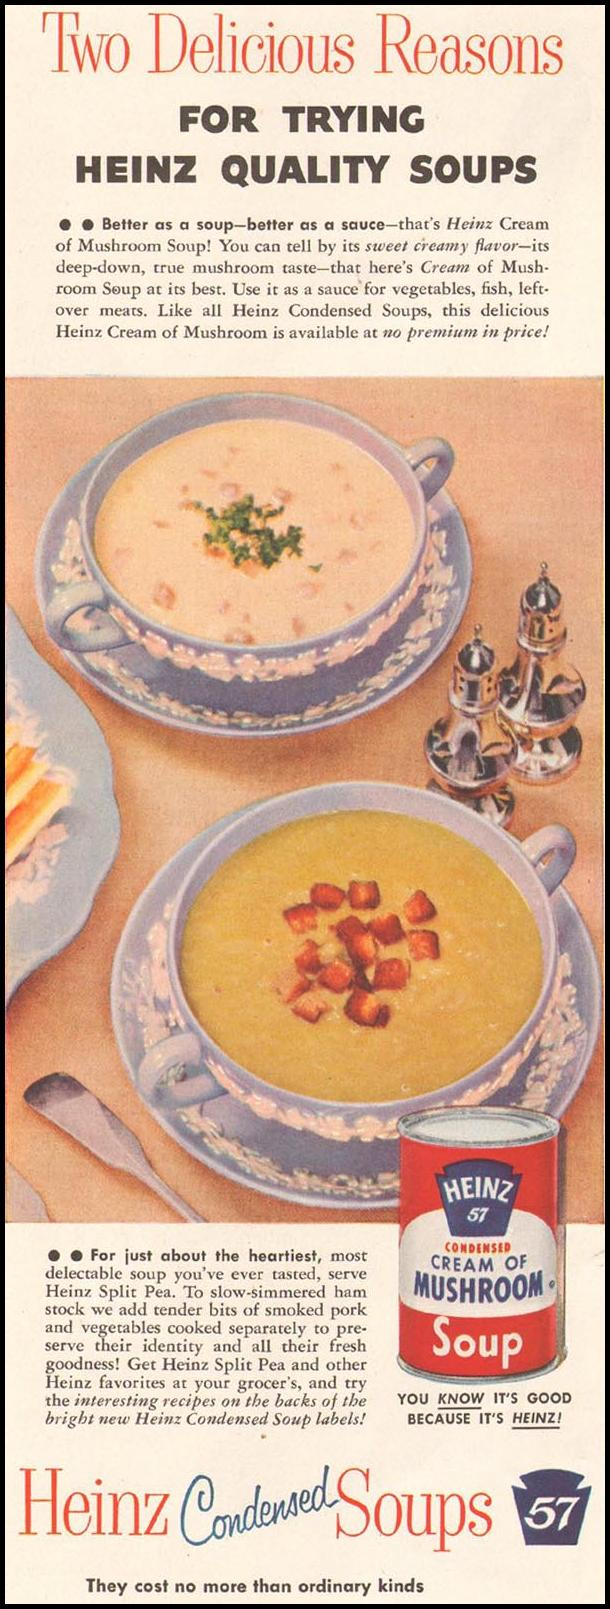 HEINZ CONDENSED SOUPS LADIES' HOME JOURNAL 03/01/1954 p. 144